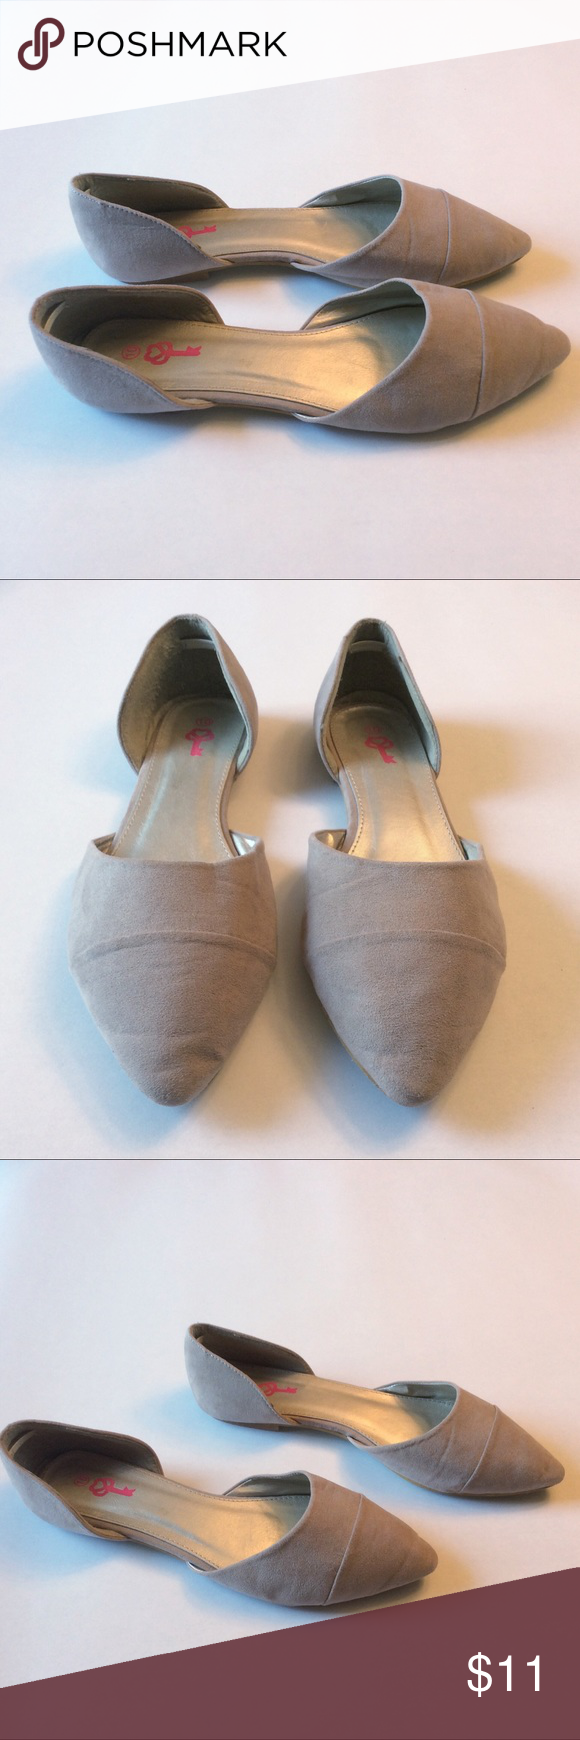 D'orsay Pointy Toe Flats Taupe/Tan suede pointy toe  Shows most of the wear on soles...but still a lot of life left in these cuties. They look darling with skinny ankle jeans, flirty dresses & breezy skirts. True to size 10, Imo. Questions welcome. Pink Key Shoes Flats & Loafers